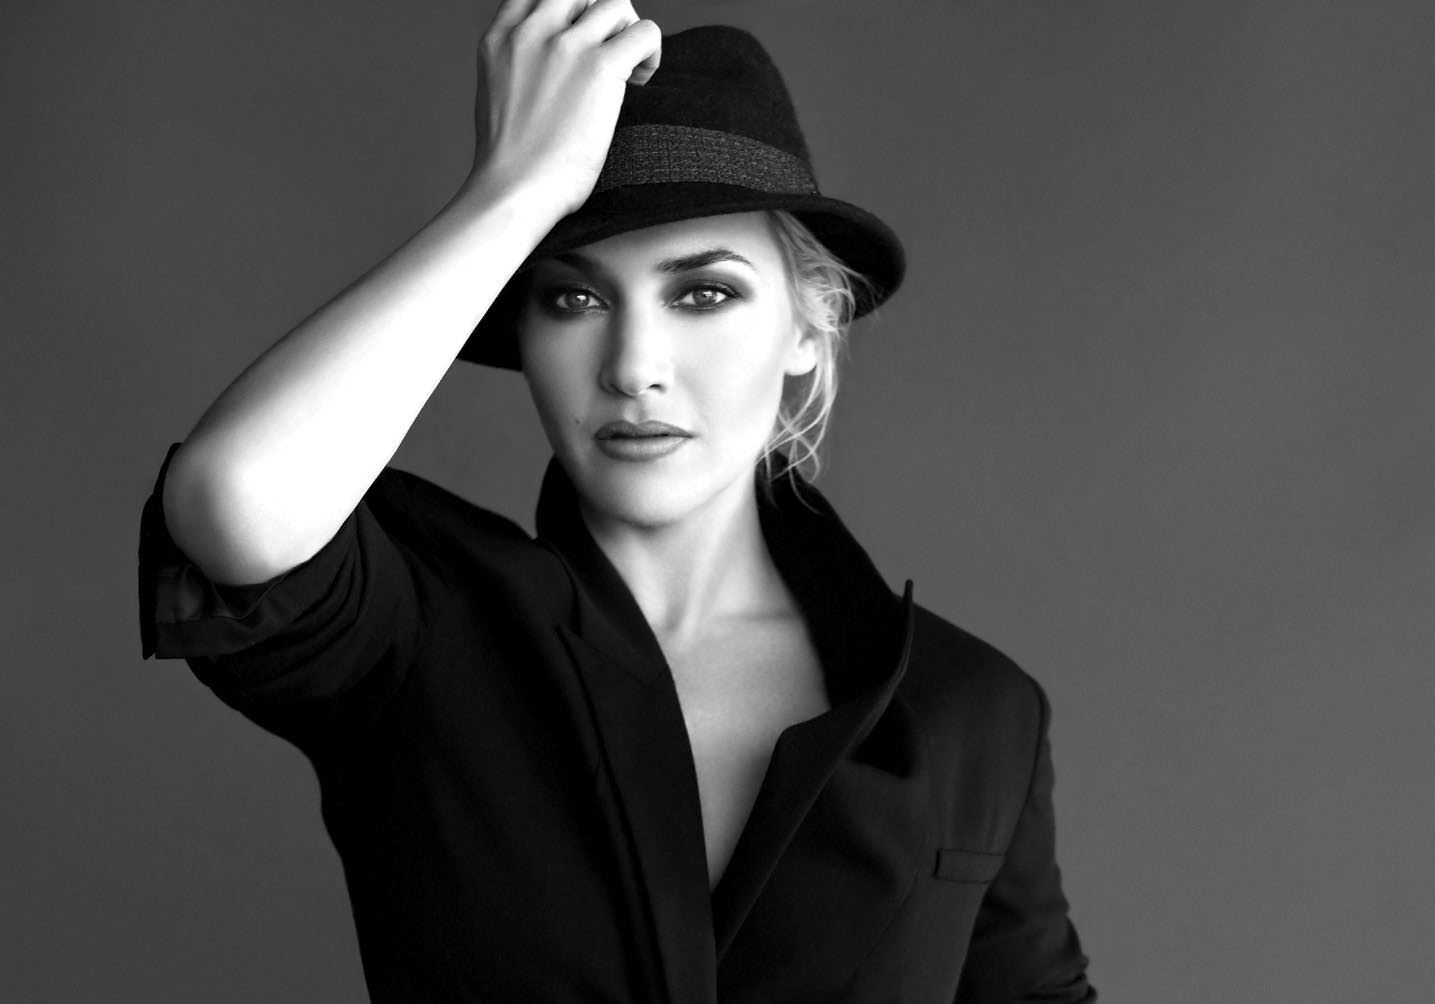 Kate Winslet Hd Wallpapers 7wallpapersnet